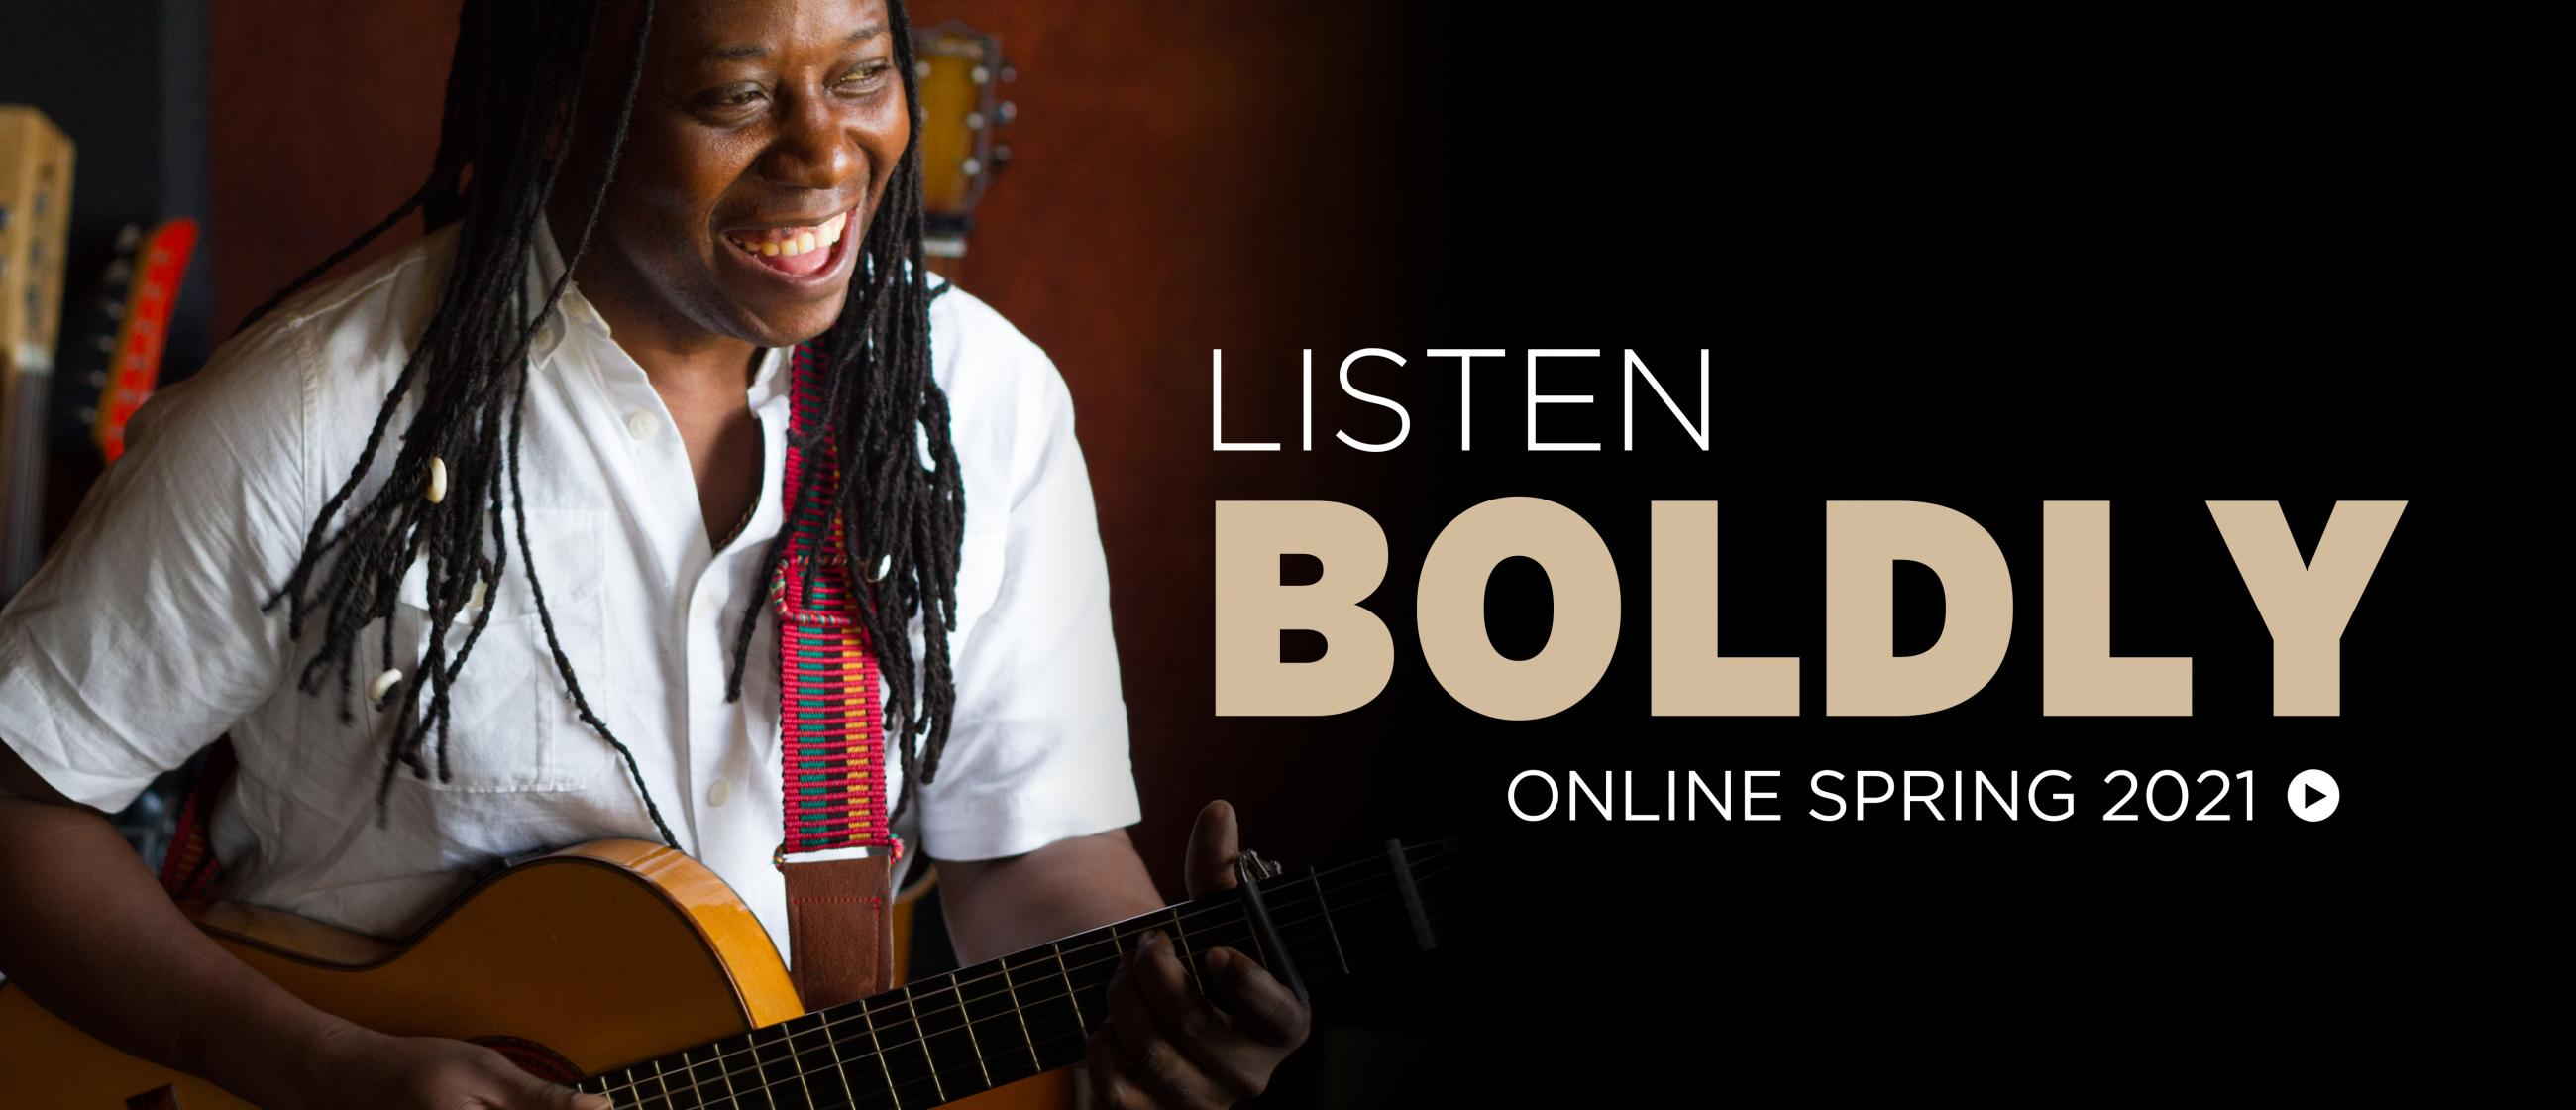 Photo of Aurelio Martínez playing guitar. Text reads Listen Boldly, Online Spring 2021